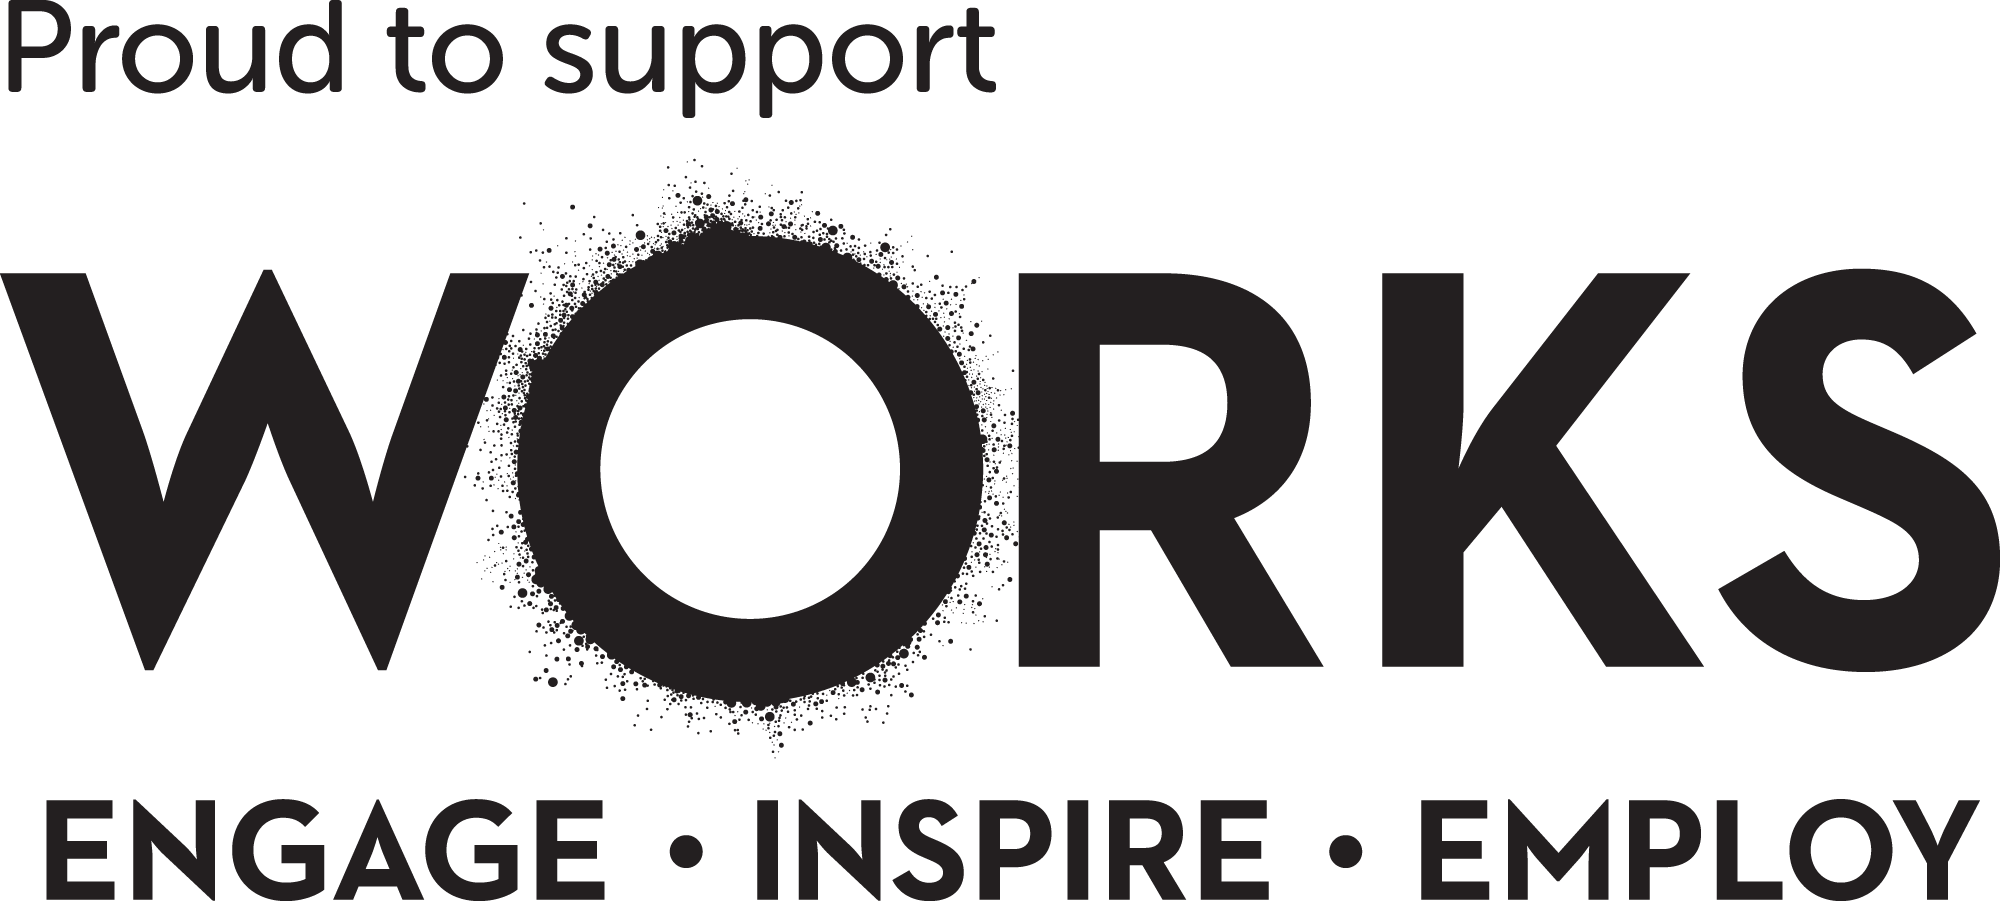 WORKS Proud to support - mono logo